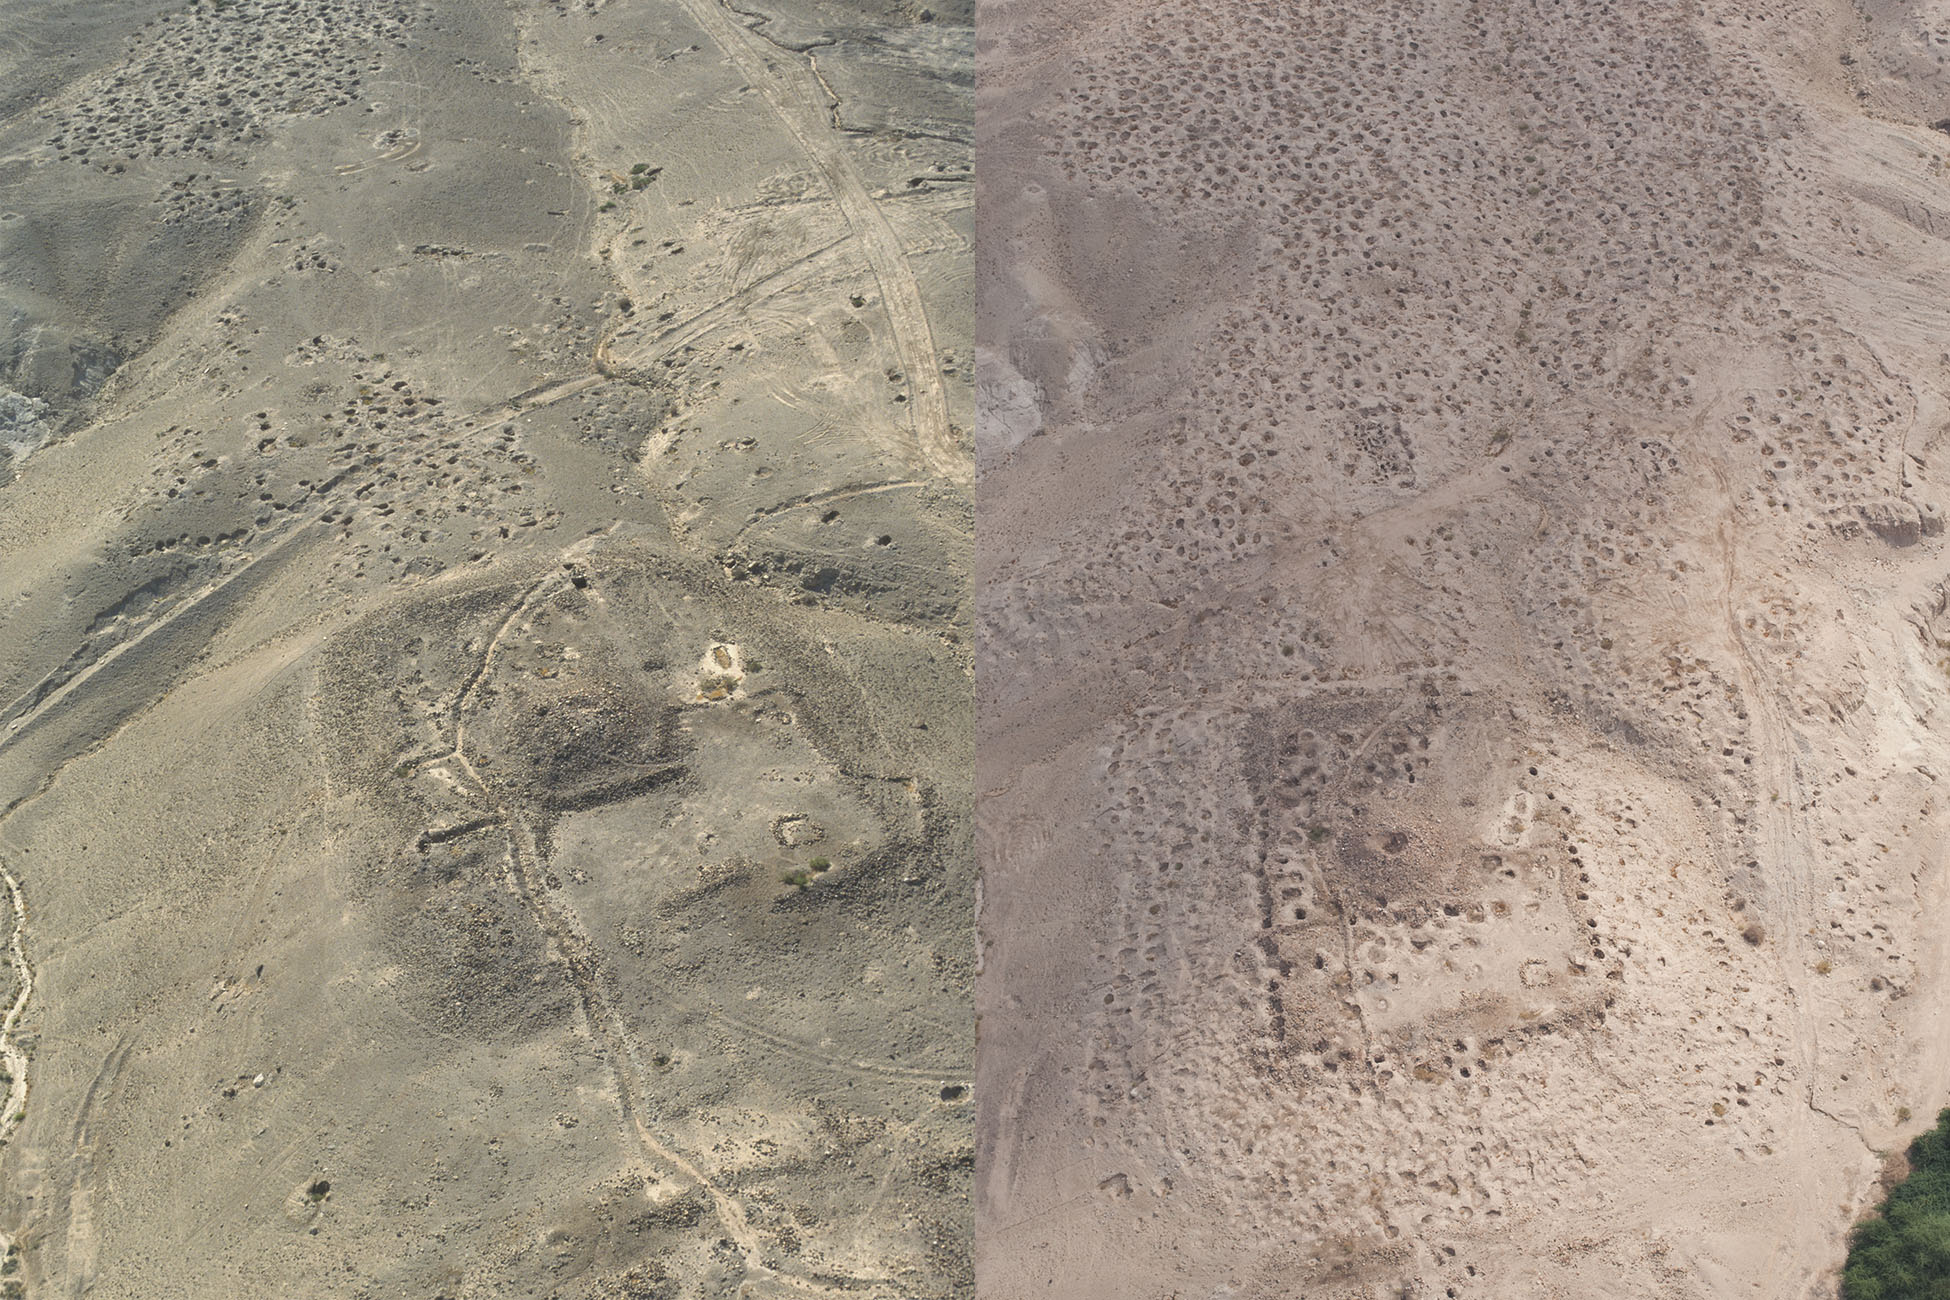 "Fig. 16. Changes in the Fifa landscape between 1998 (left) and 2014 (right) (left, D. Kennedy, APAAME_19980520_DLK-0133; right, R. Bewley, APAAME_20141013_RHB-200; courtesy Aerial Photographic Archive for Archaeology in the Middle East [APAAME]; <a href=""http://www.apaame.org/"">www.apaame.org/</a>)."